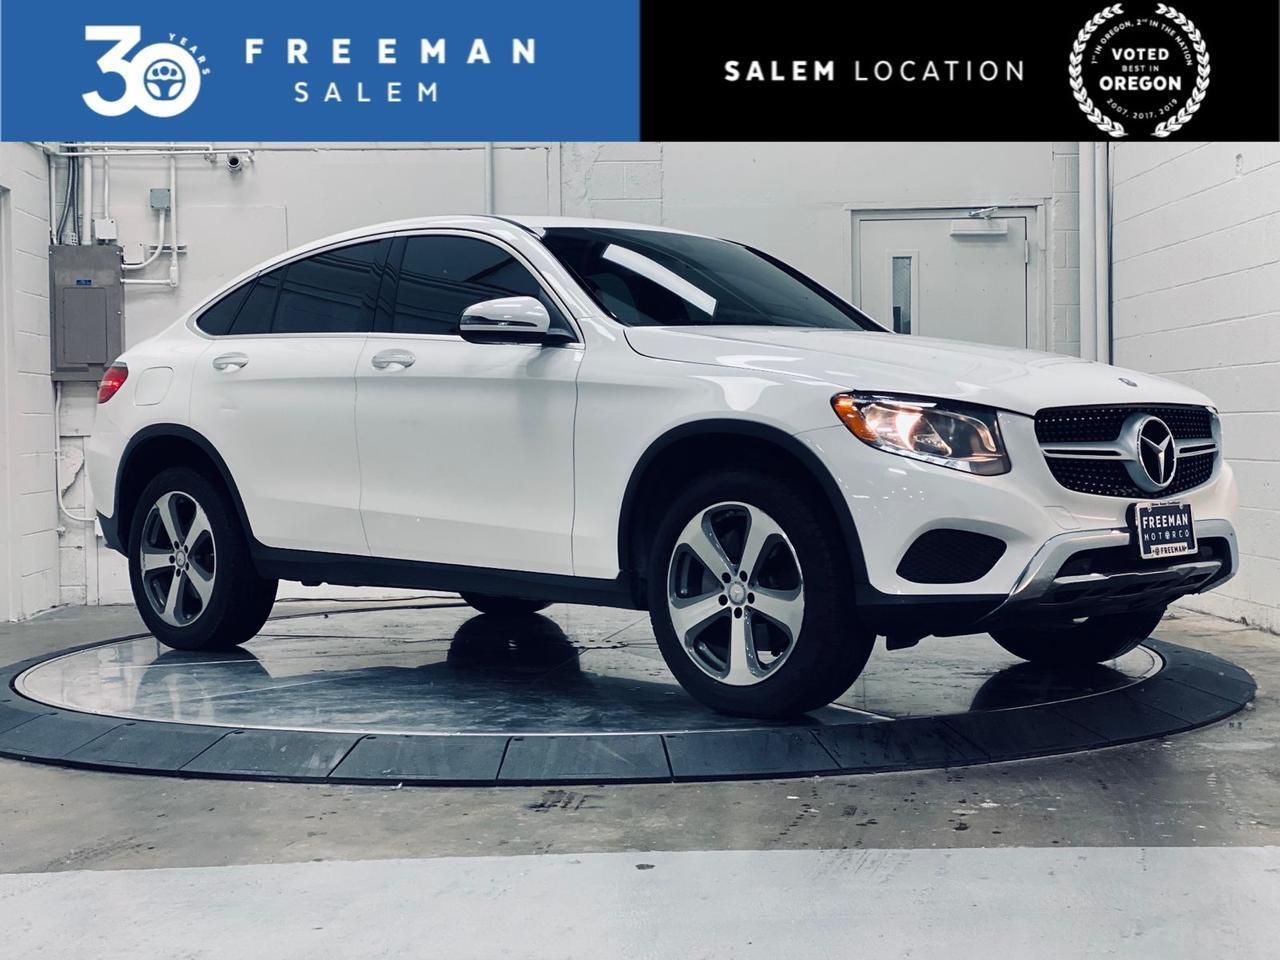 2017 Mercedes-Benz GLC 300 4MATIC Coupe Backup Cam Blind Spot Assist Salem OR